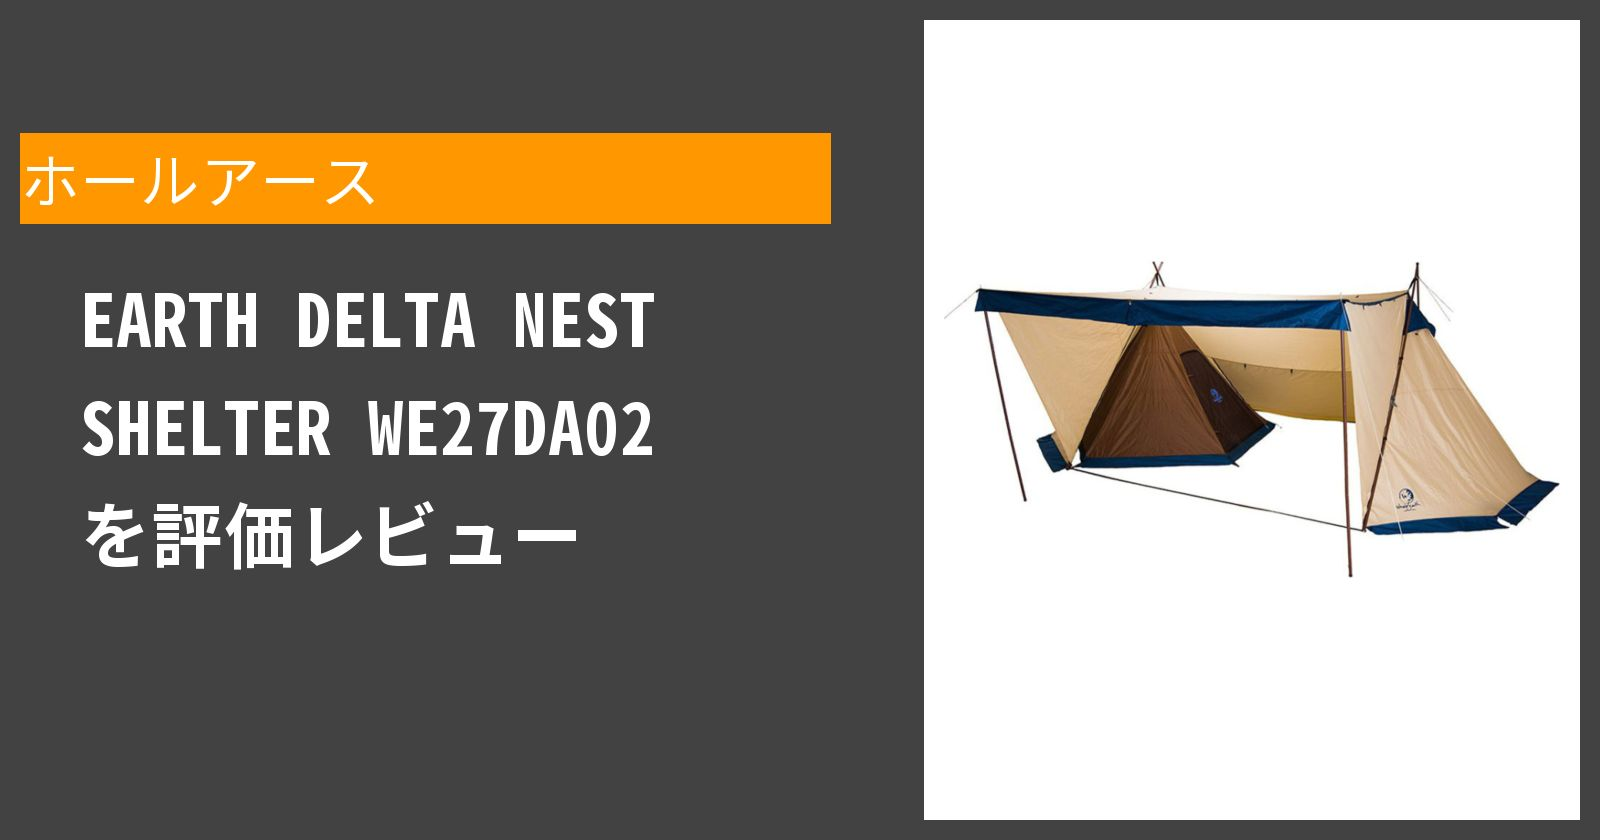 EARTH DELTA NEST SHELTER WE27DA02を徹底評価